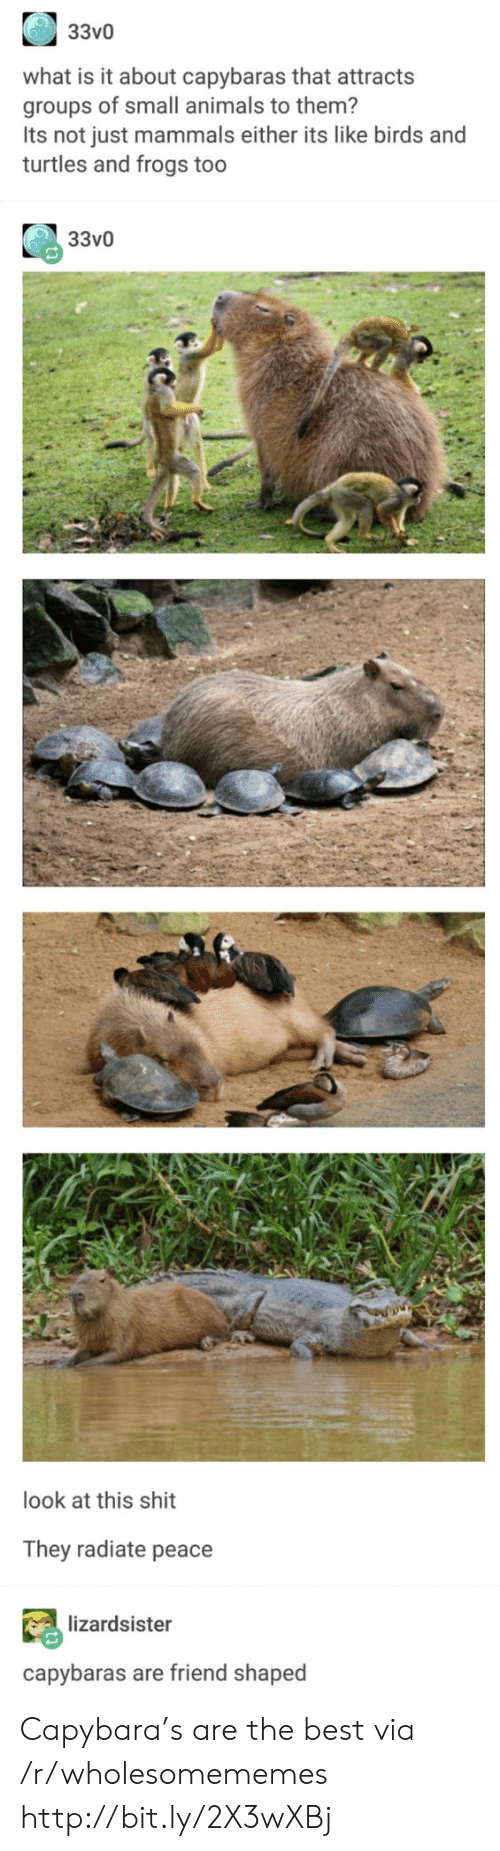 frogs: 33v0  what is it about capybaras that attracts  groups of small animals to them?  Its not just mammals either its like birds and  turtles and frogs too  33v0  look at this shit  They radiate peace  lizardsister  capybaras are friend shaped Capybara's are the best via /r/wholesomememes http://bit.ly/2X3wXBj